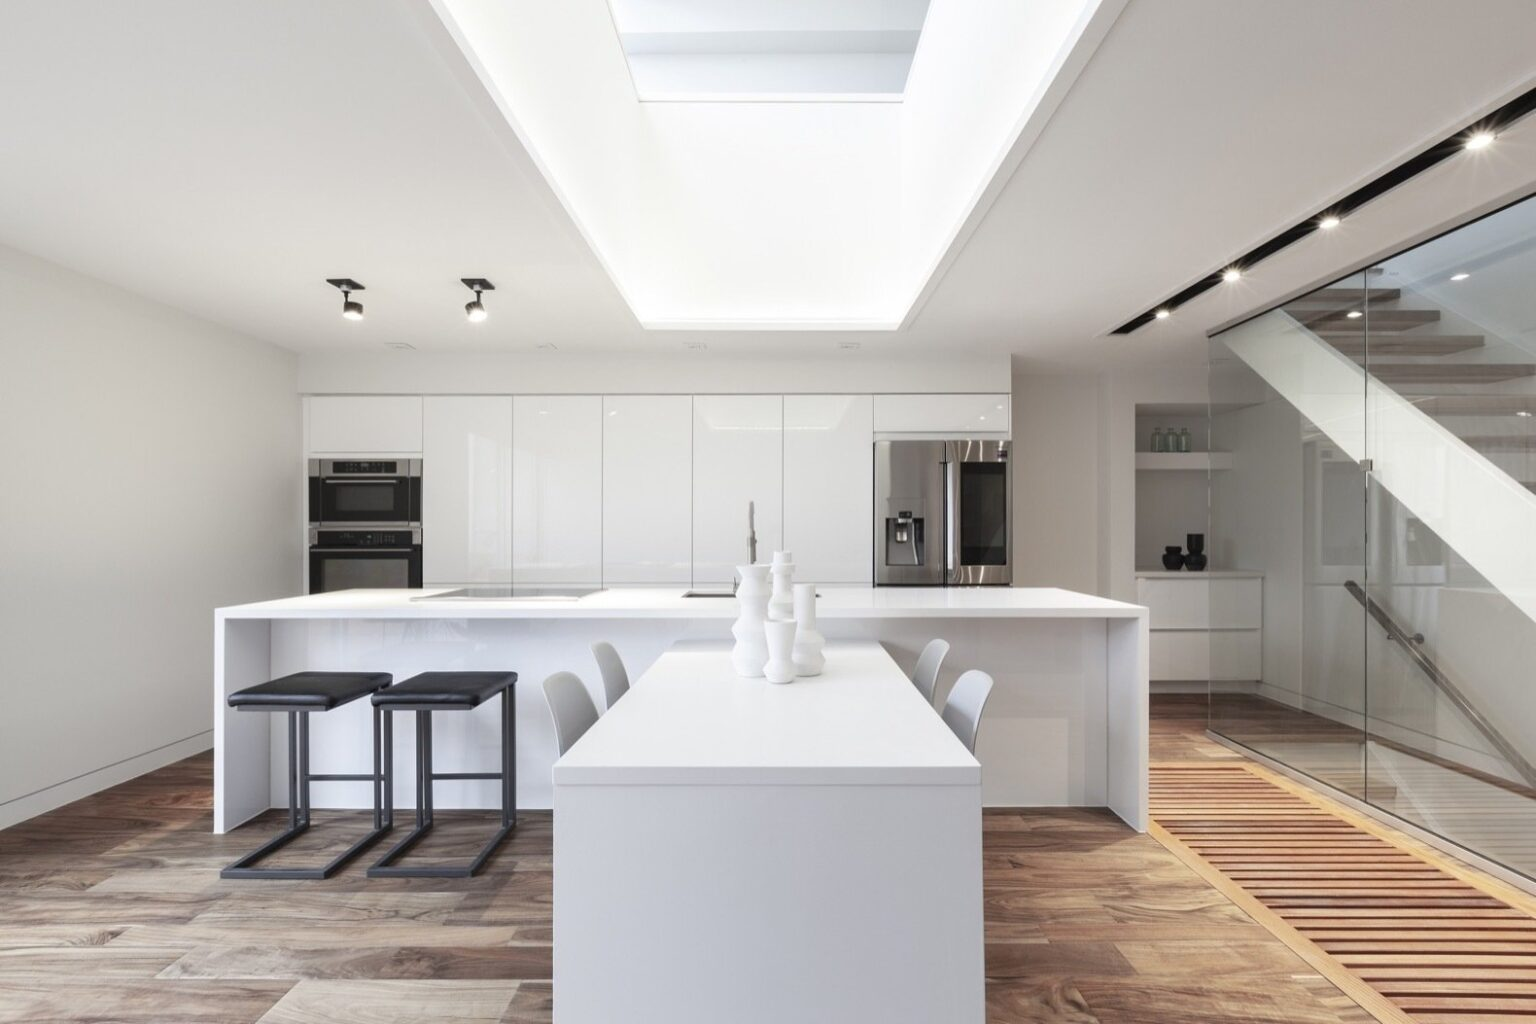 for-a-clean-and-bright-finish-the-light-filled-kitchen-is-fitted-with-white-quartz-countertops-and-high-gloss-white-ikea-cabinetry